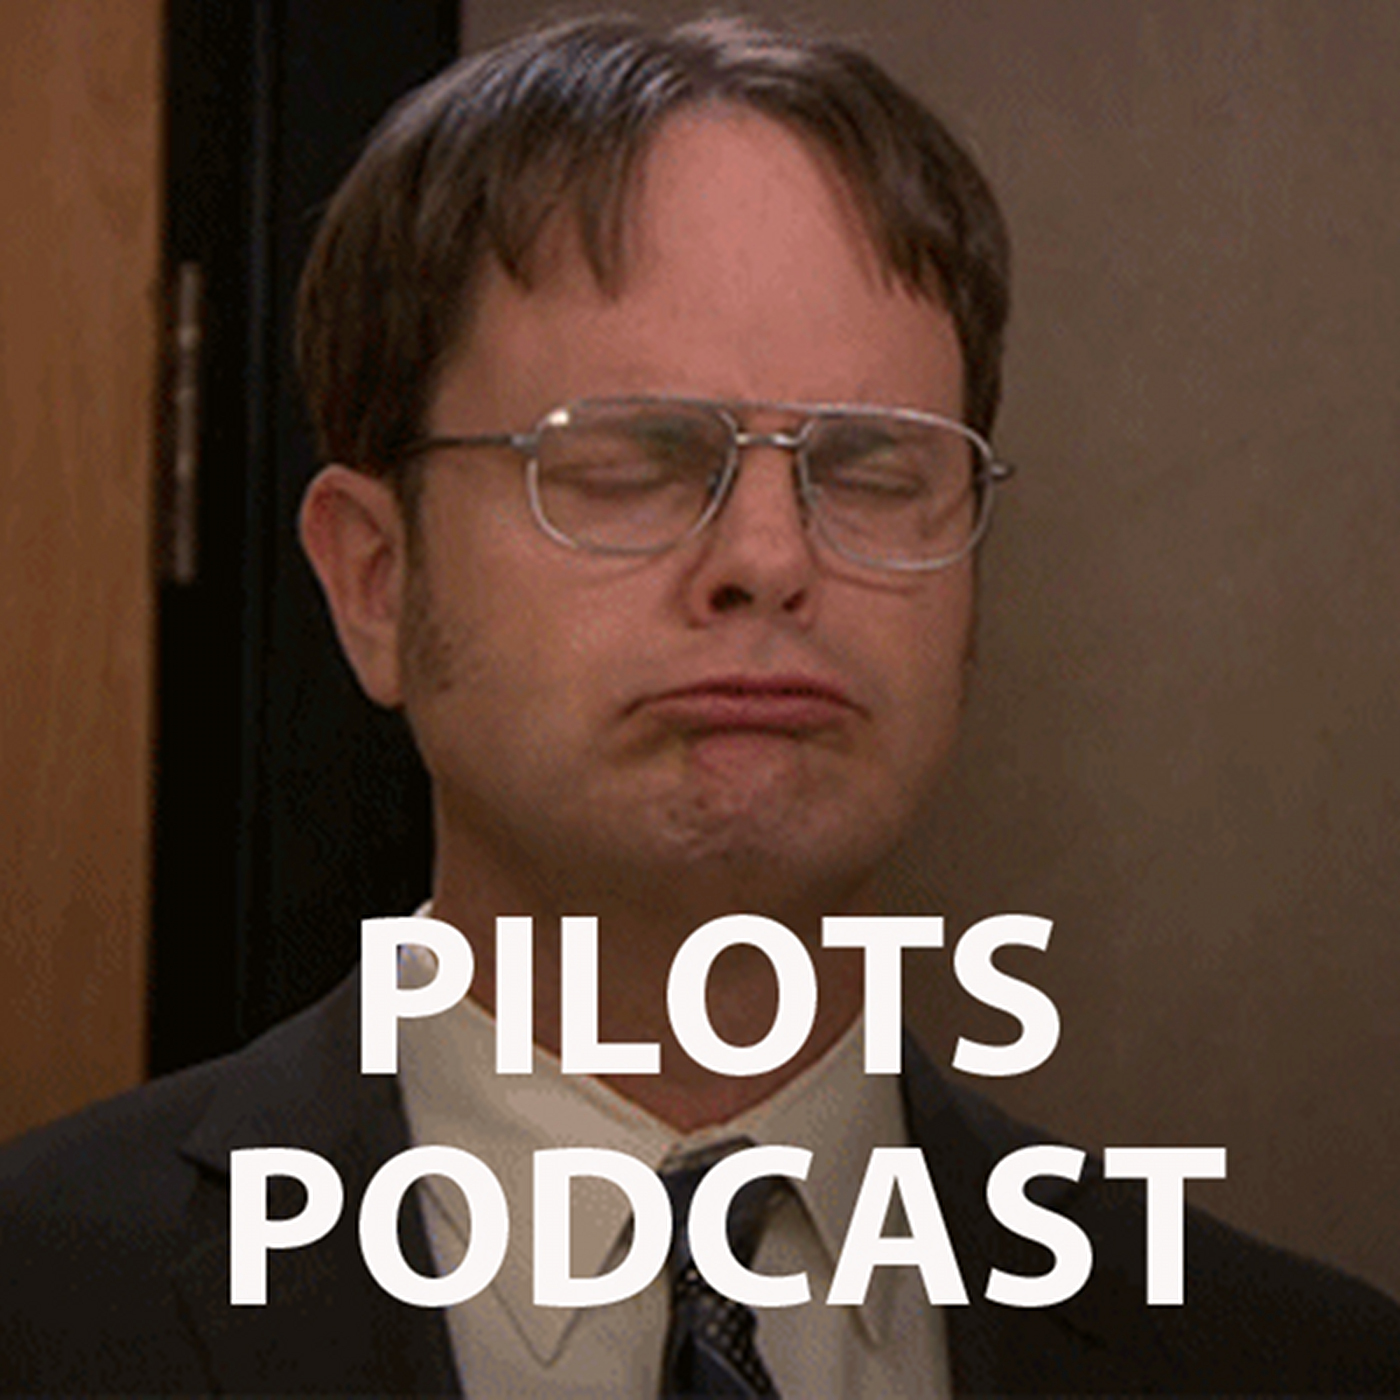 Pilots Podcast